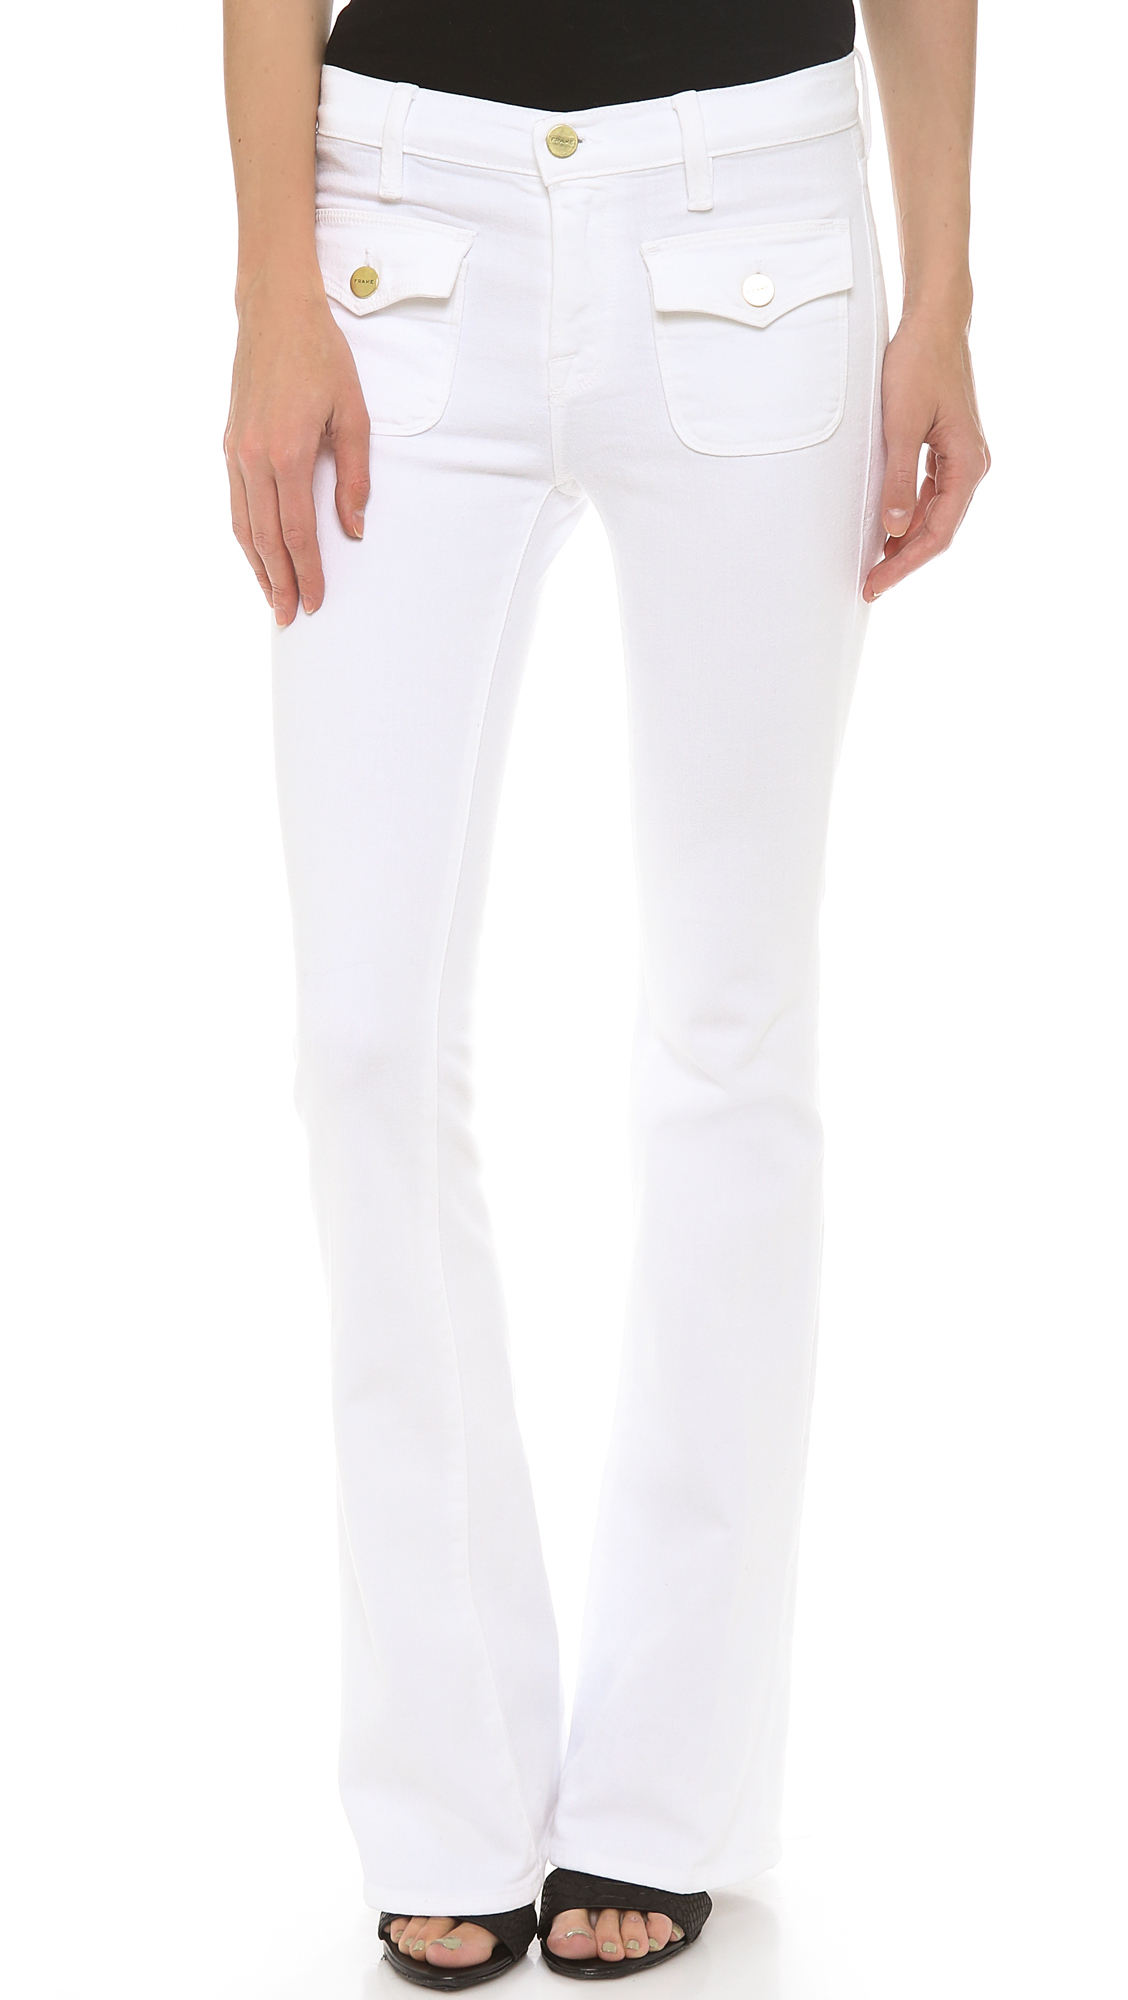 Lyst - Frame Le High Flare Flap Pocket Jeans in White